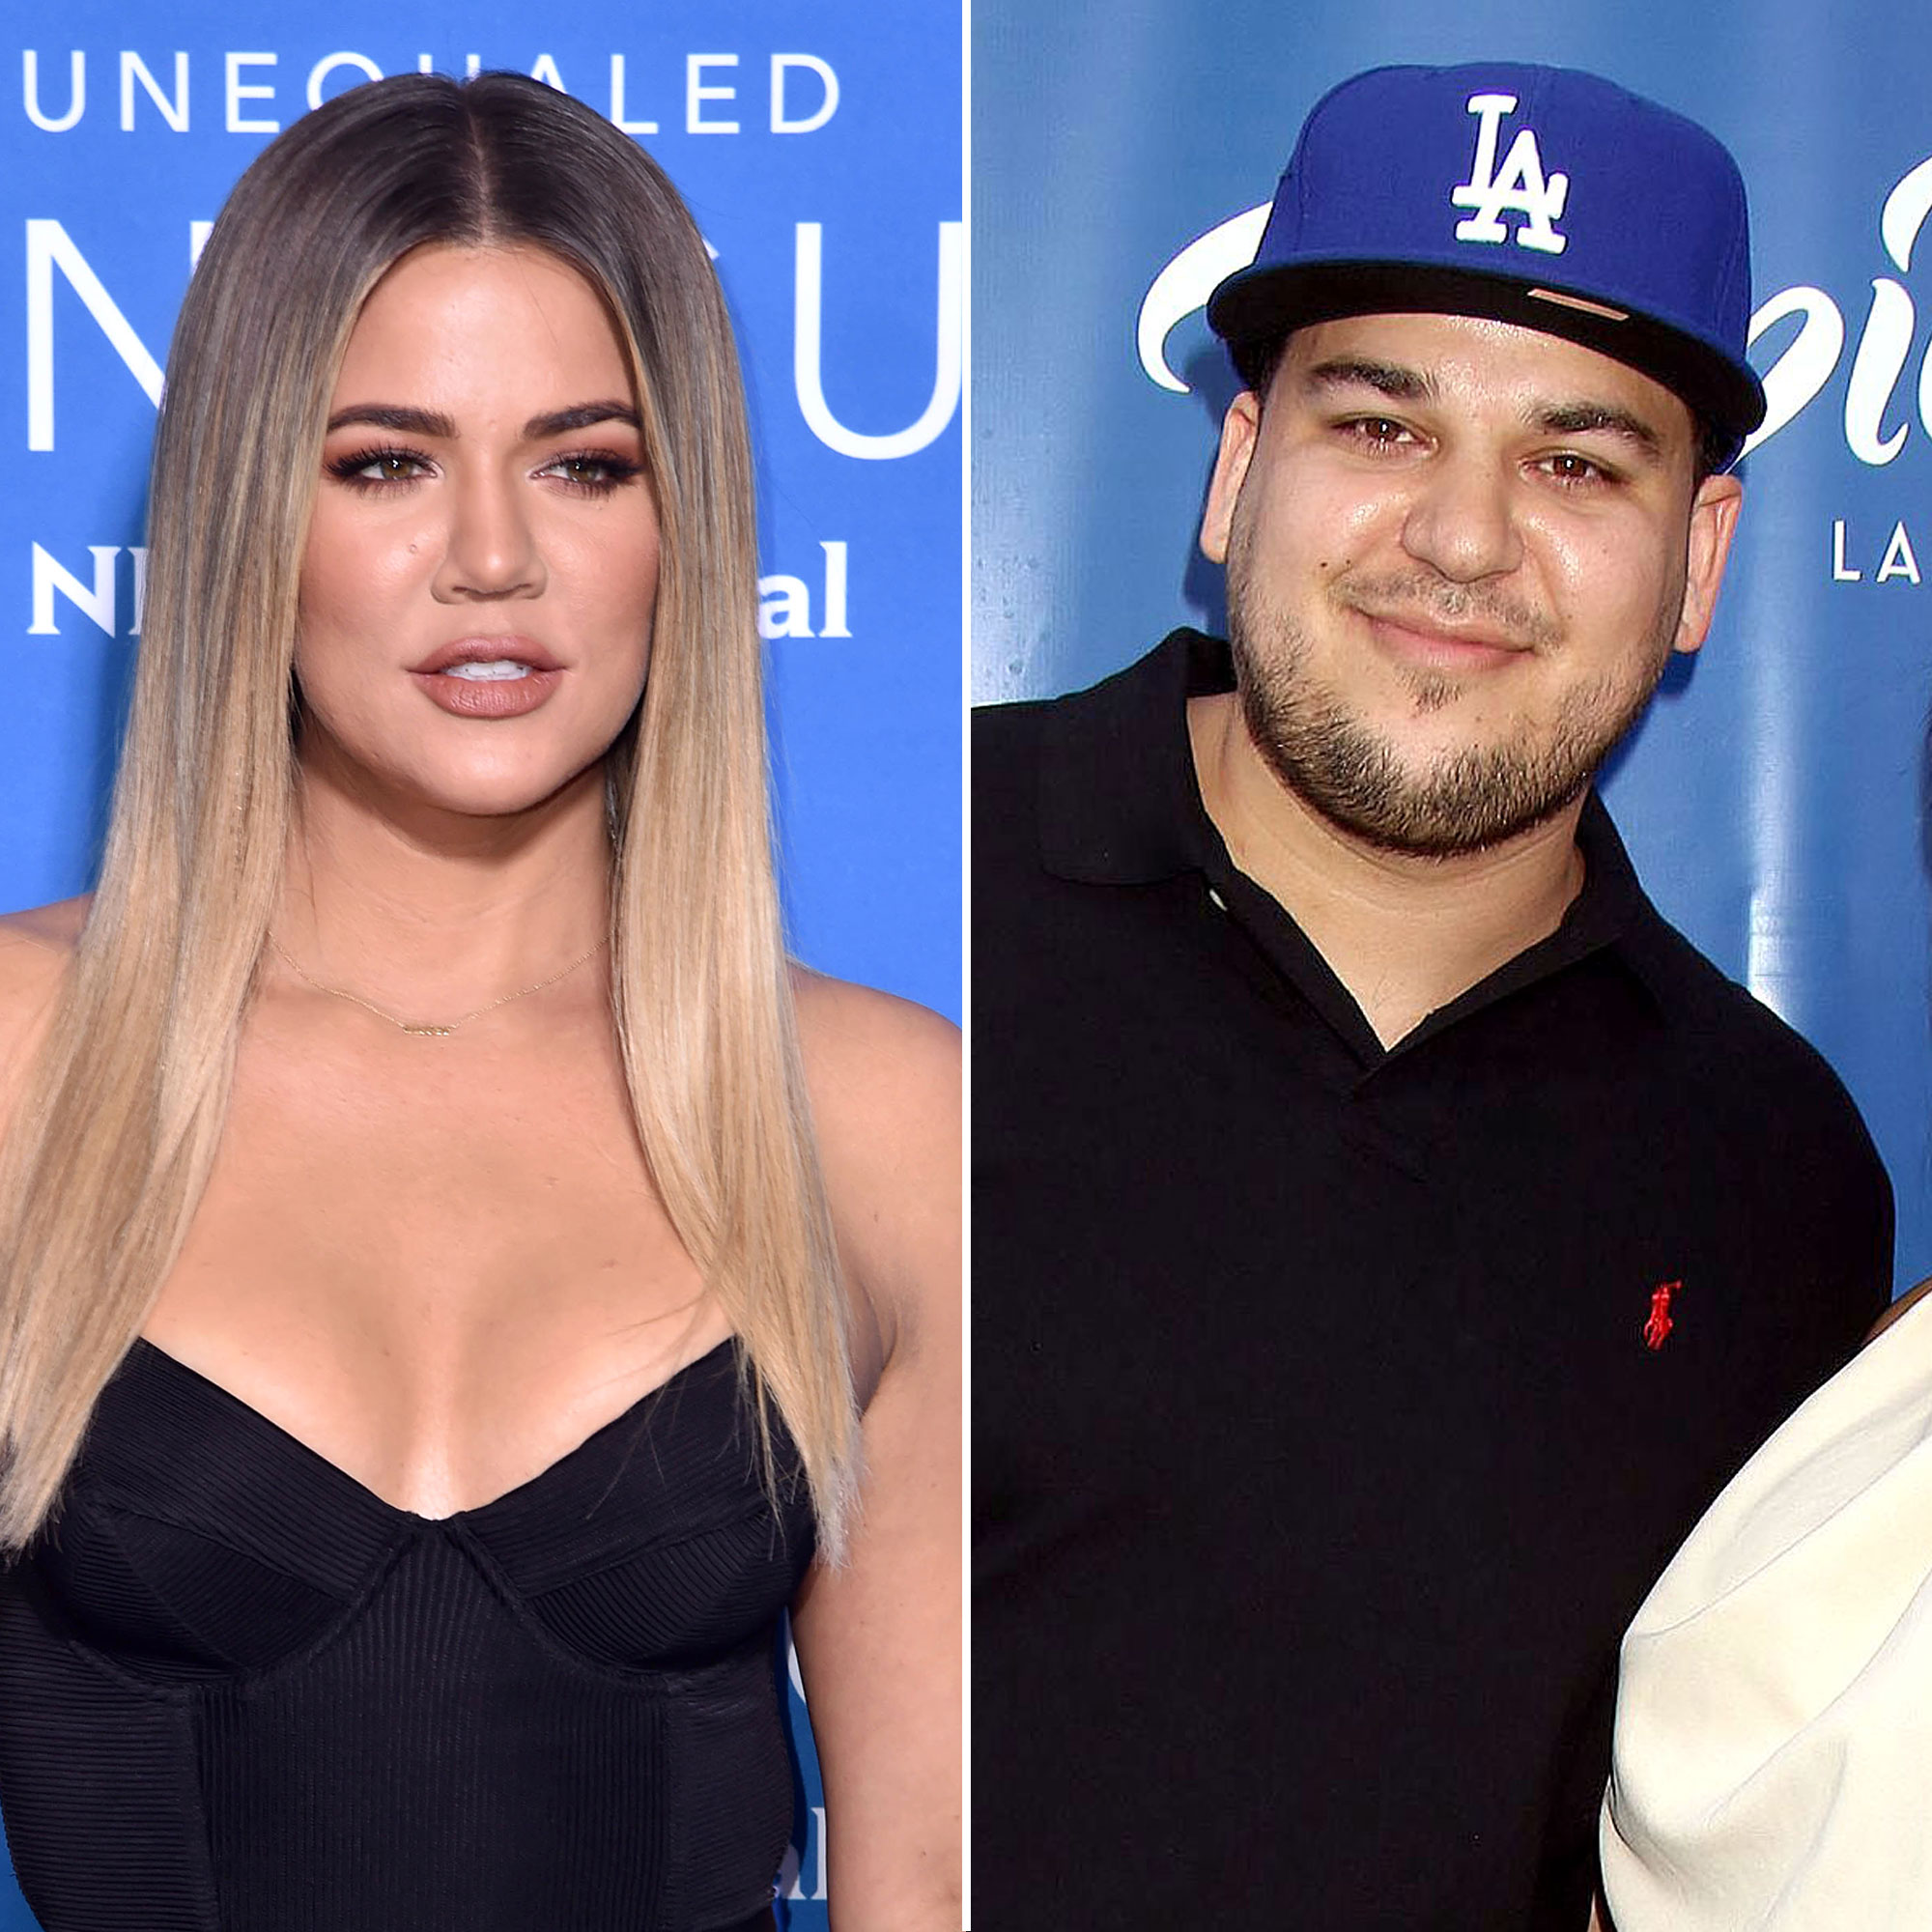 KUWTK: Khloe Kardashian Wonders If It's Weird That She Finds Brother Rob 'Hot!'